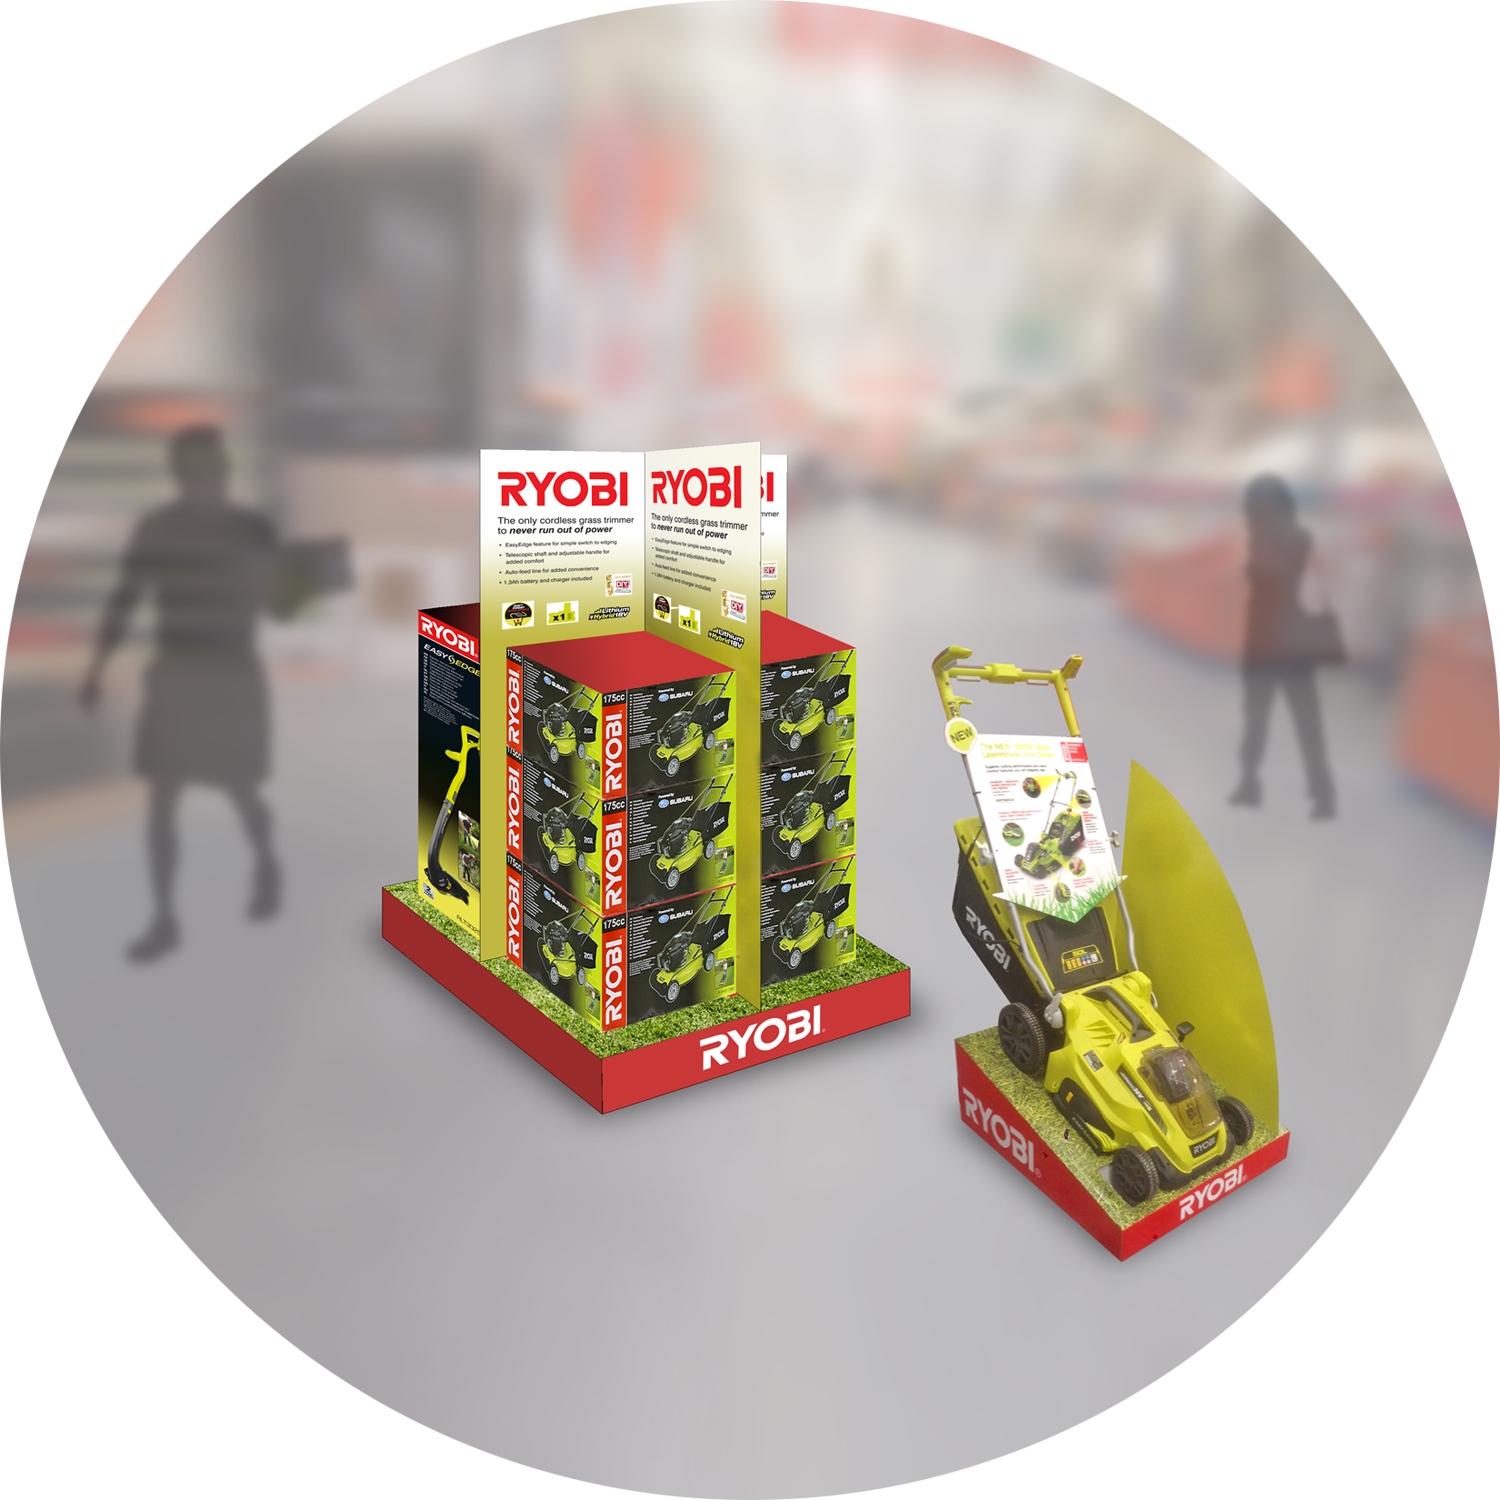 RYOBI point of sale for B&Q